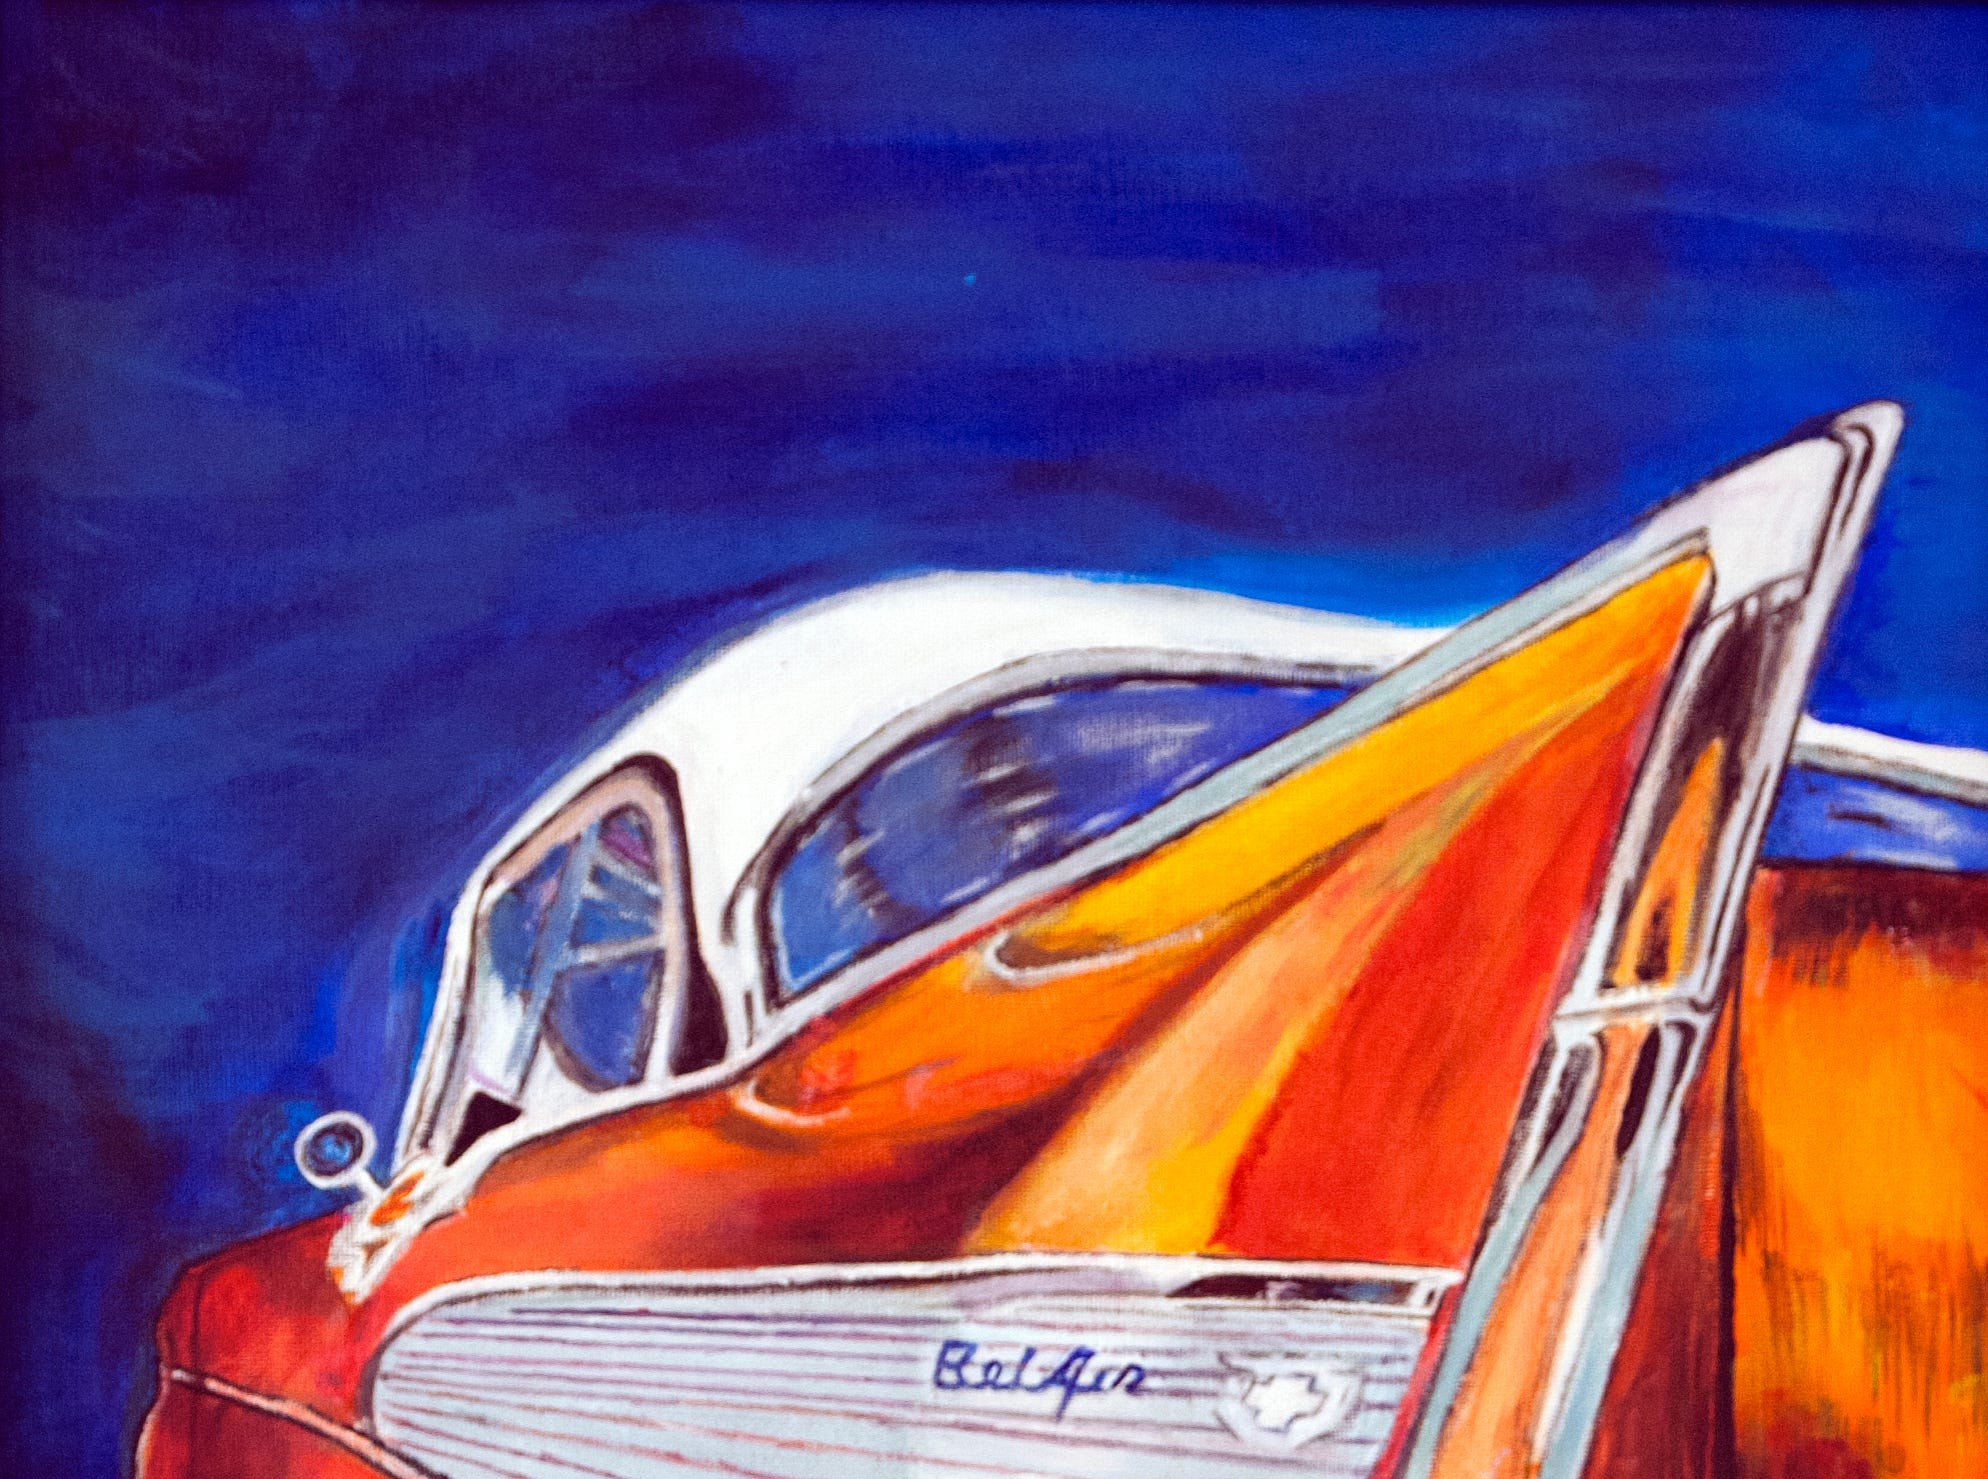 Chevy Fin by Demetrius Williams is part of the VSA Mississippi-sponsored Community Art Group exhibit showing at the Arts Center of Mississippi in downtown Jackson through Jan. 10, 2019. Tuesday, Dec. 18, 2018.